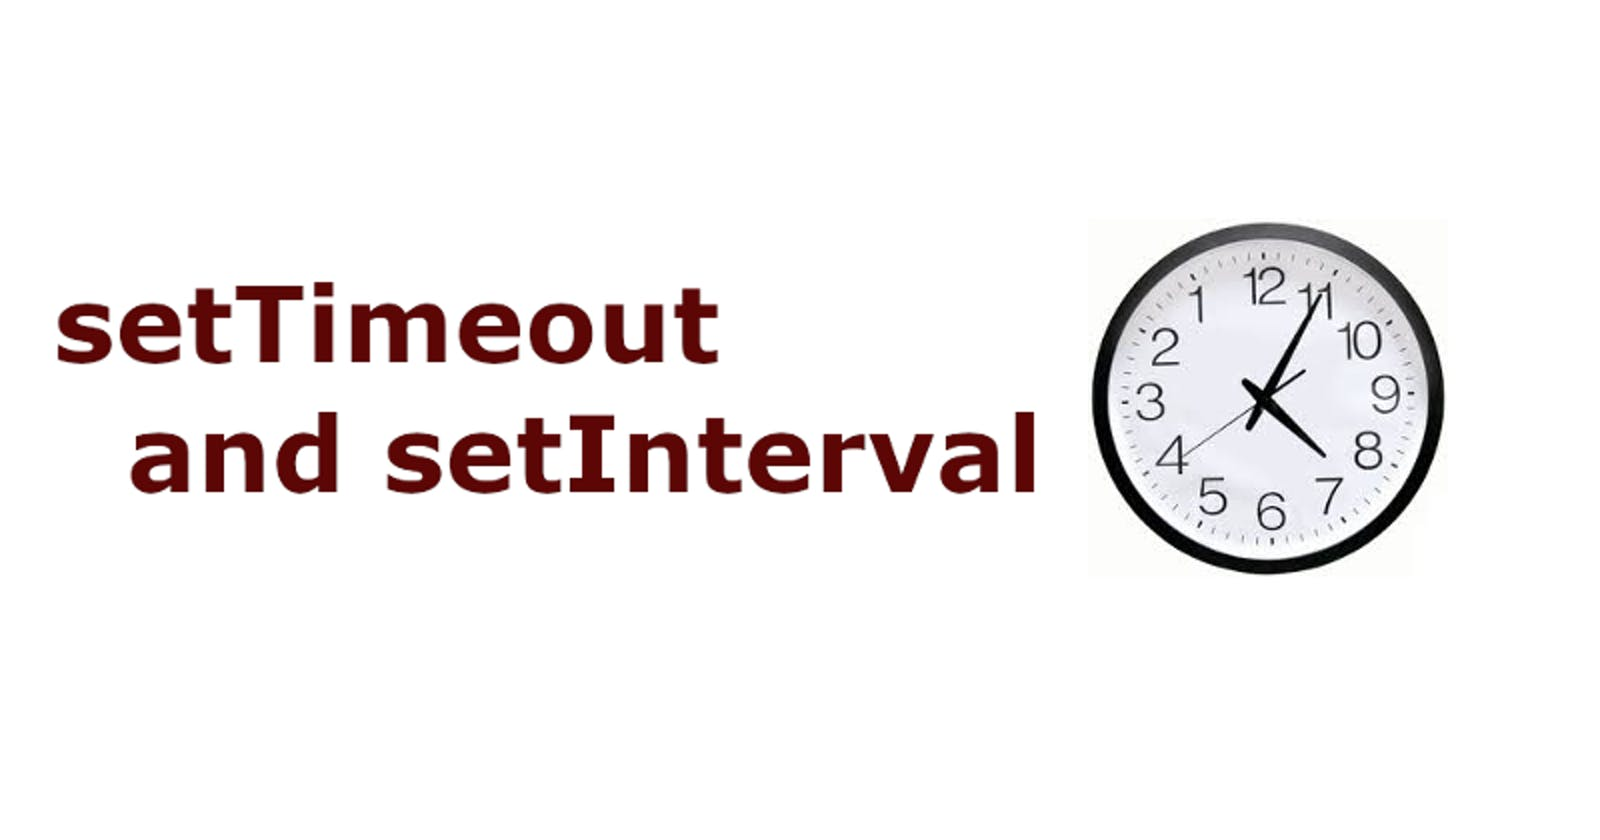 Testing setTimeout and setInterval